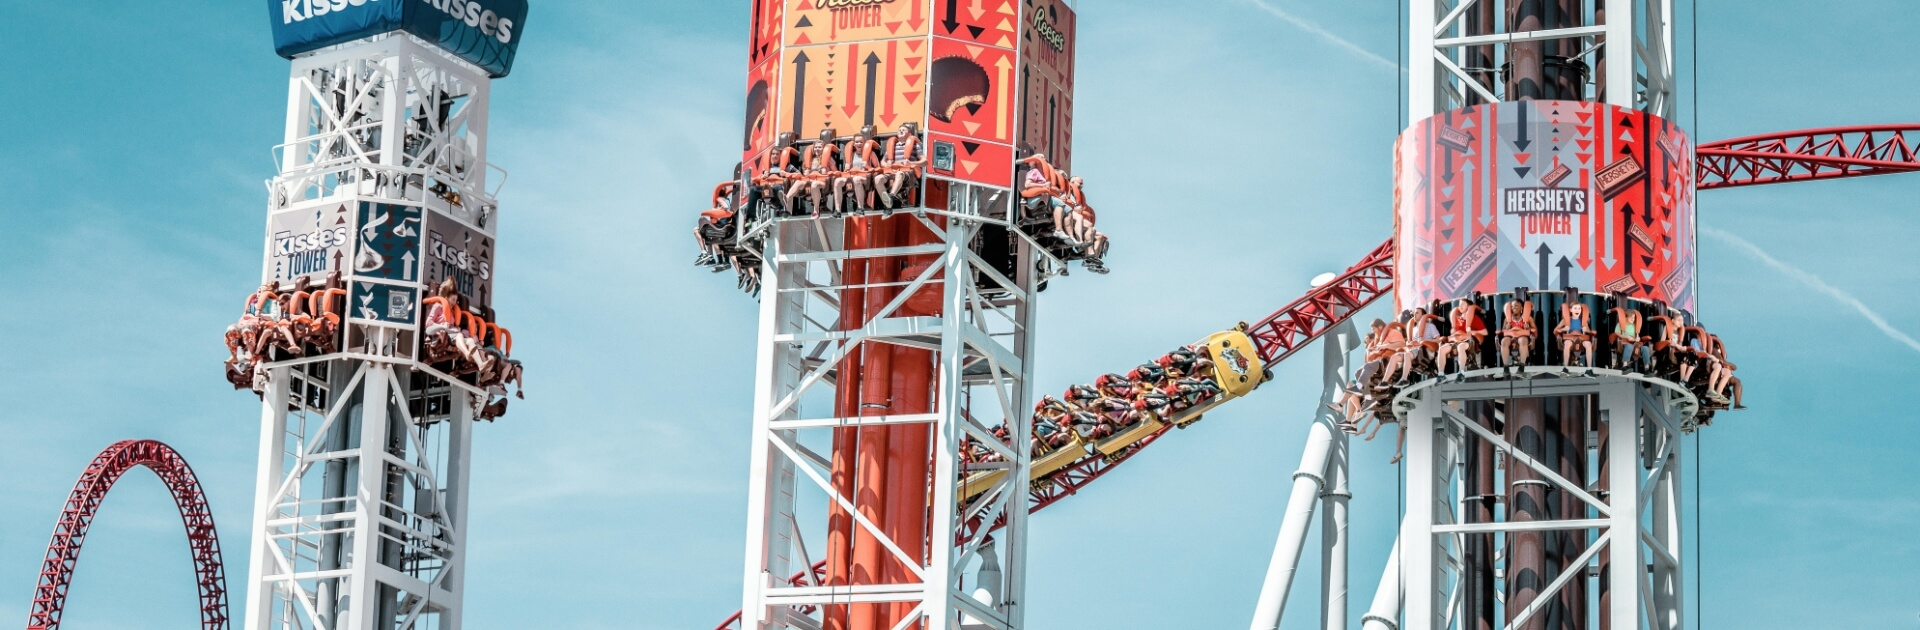 Triple Tower Attraction